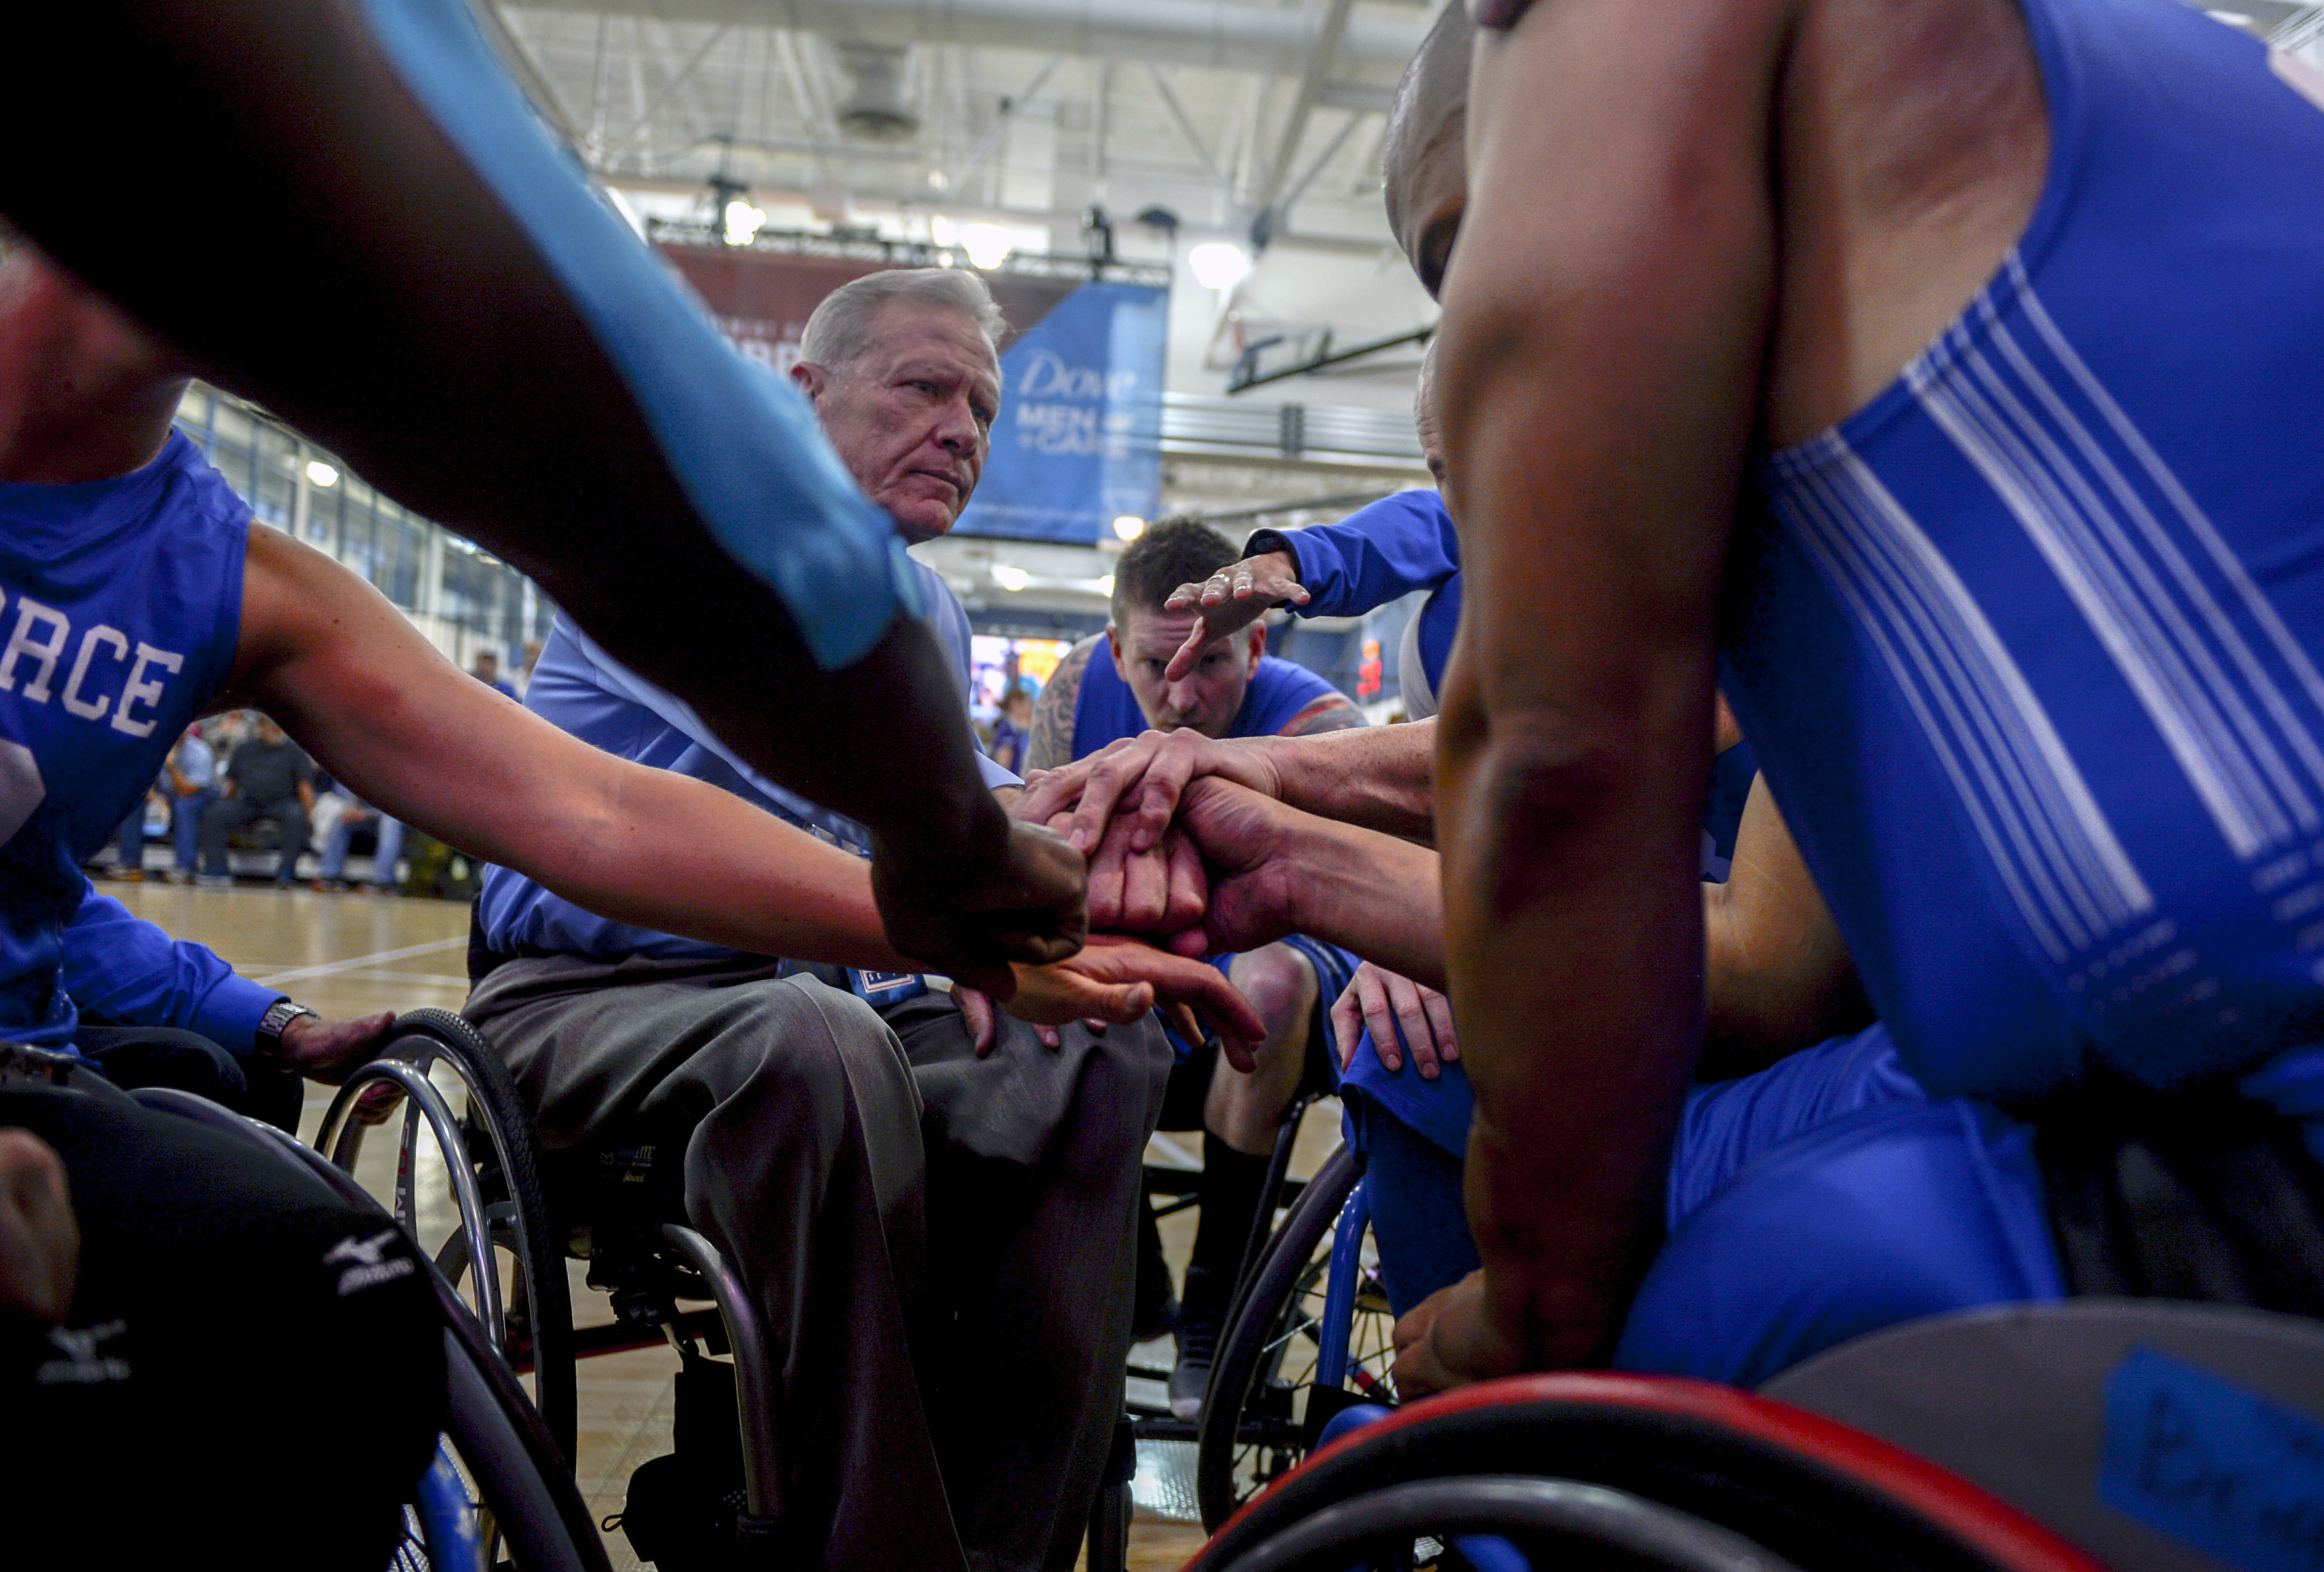 A group of athletes in wheelchairs.